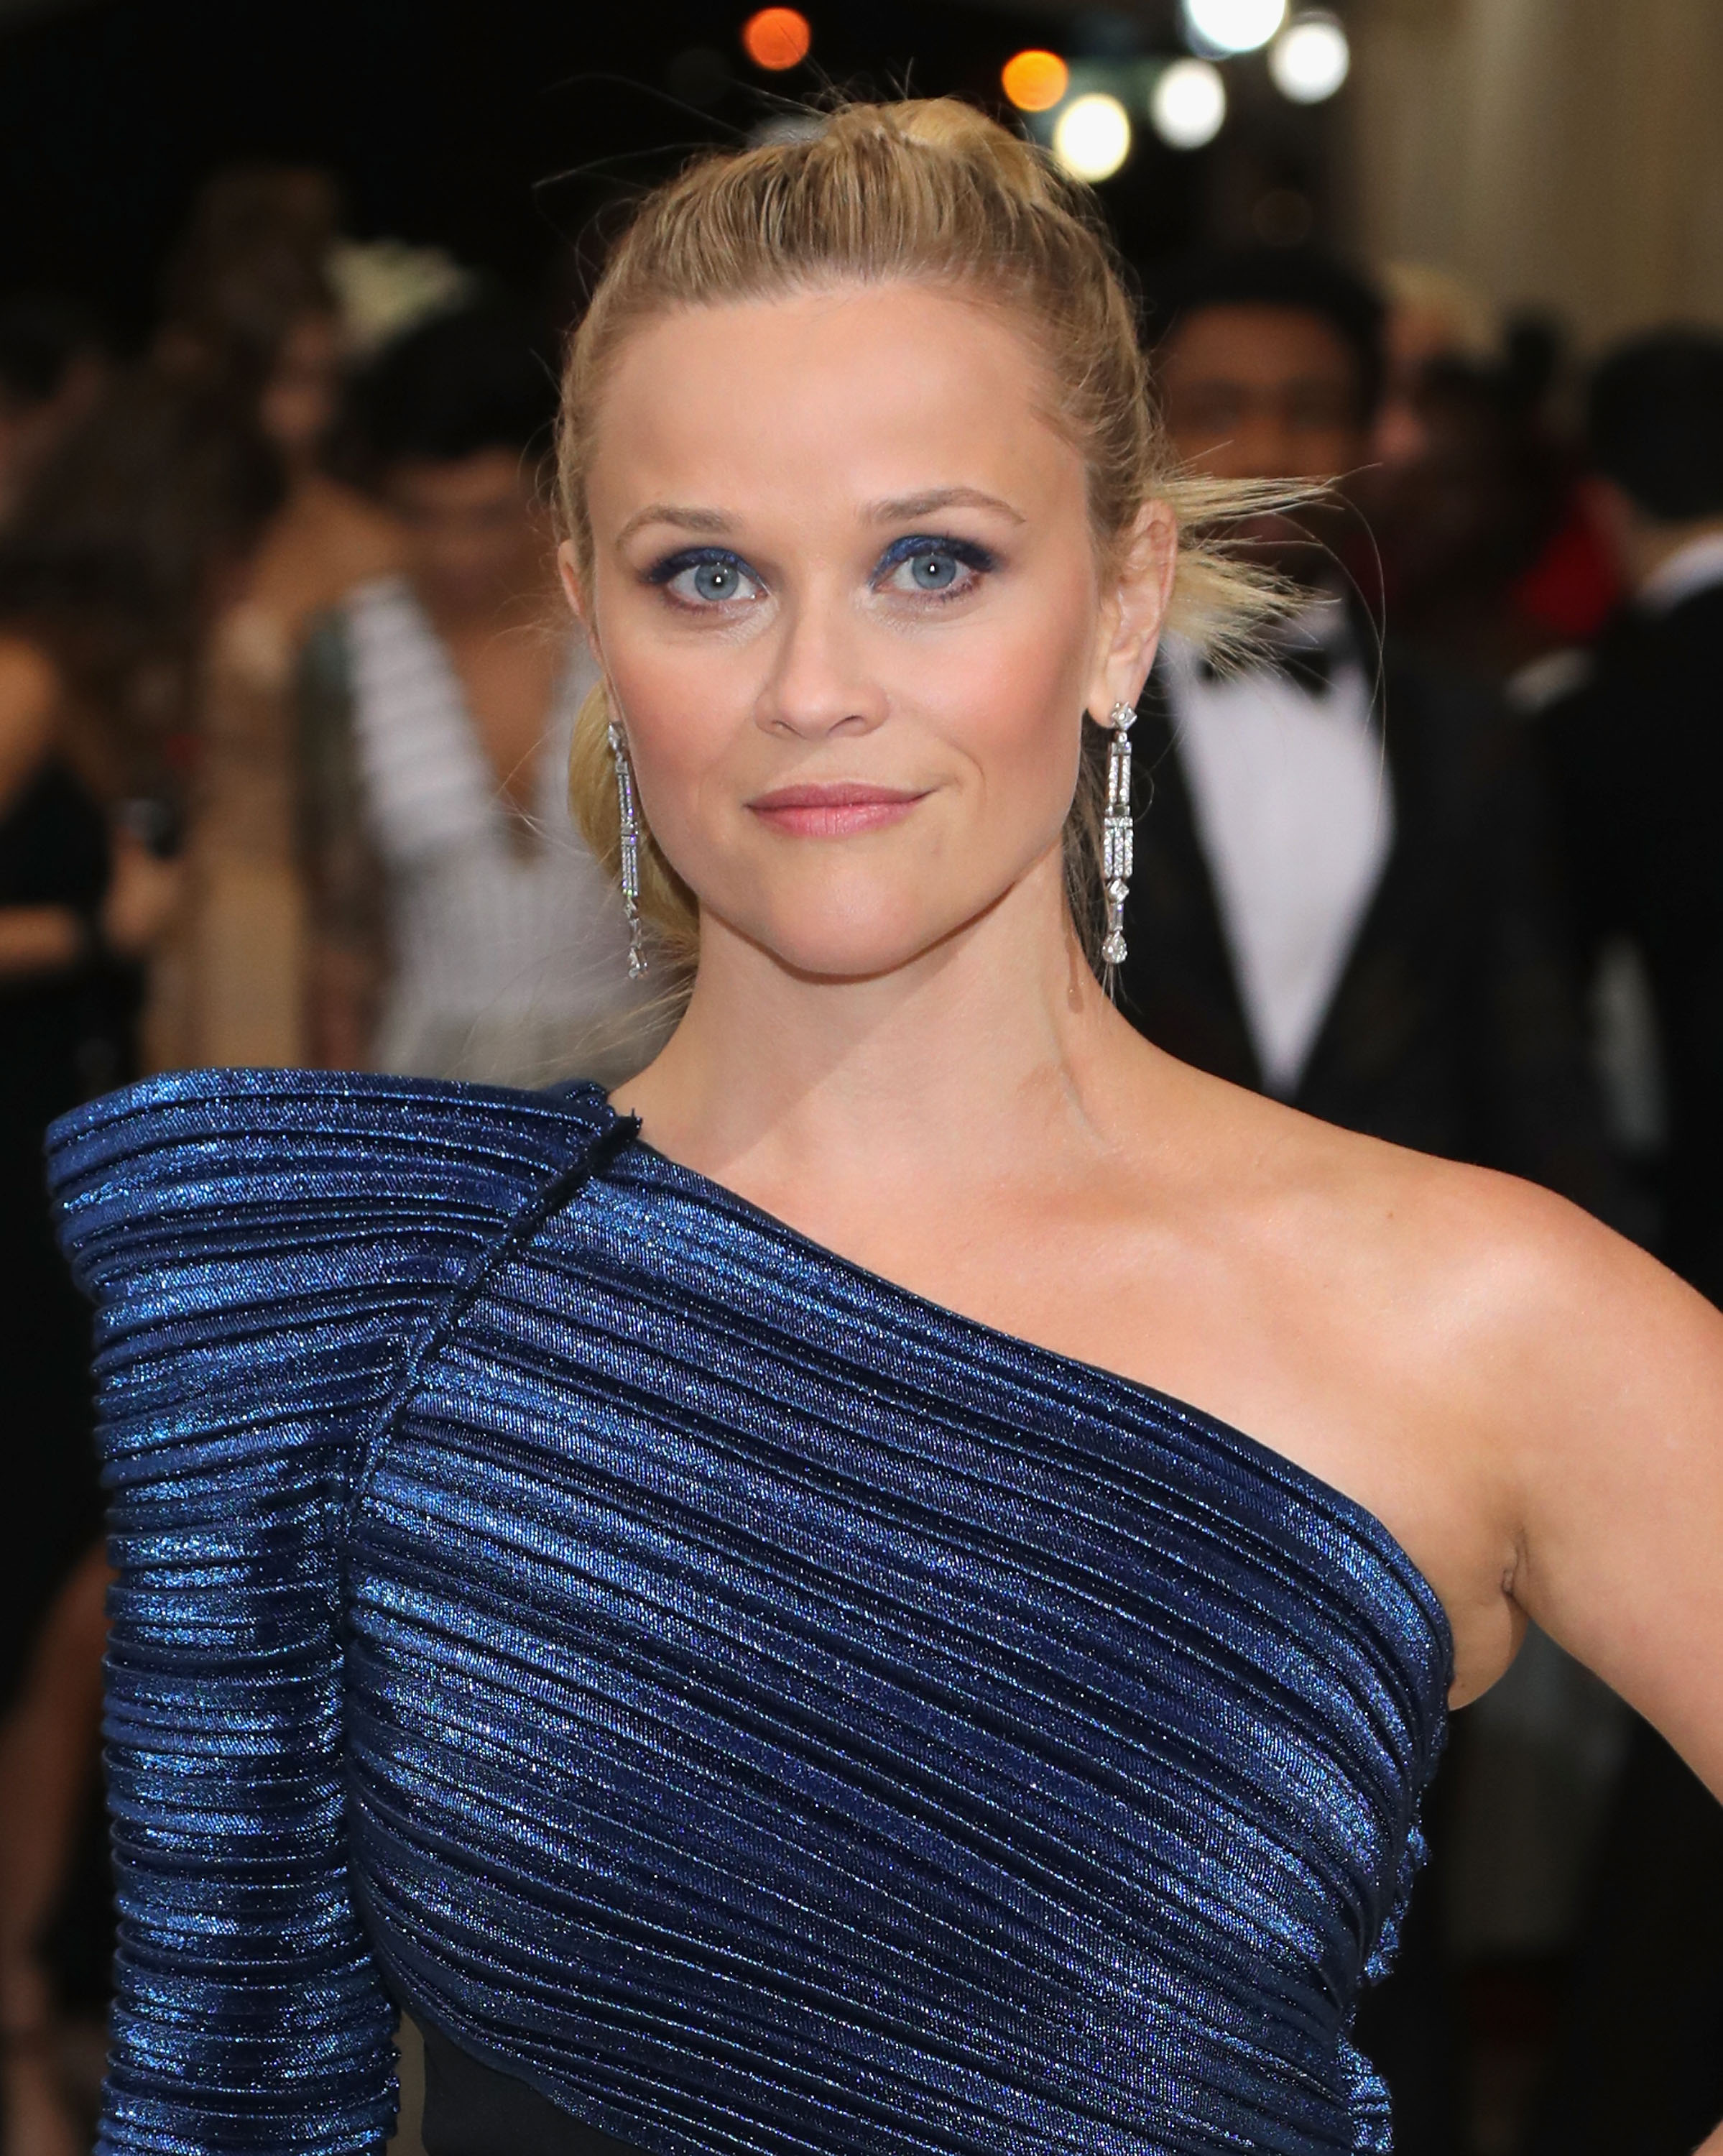 <b>REESE WITHERSPOON ME...</b>